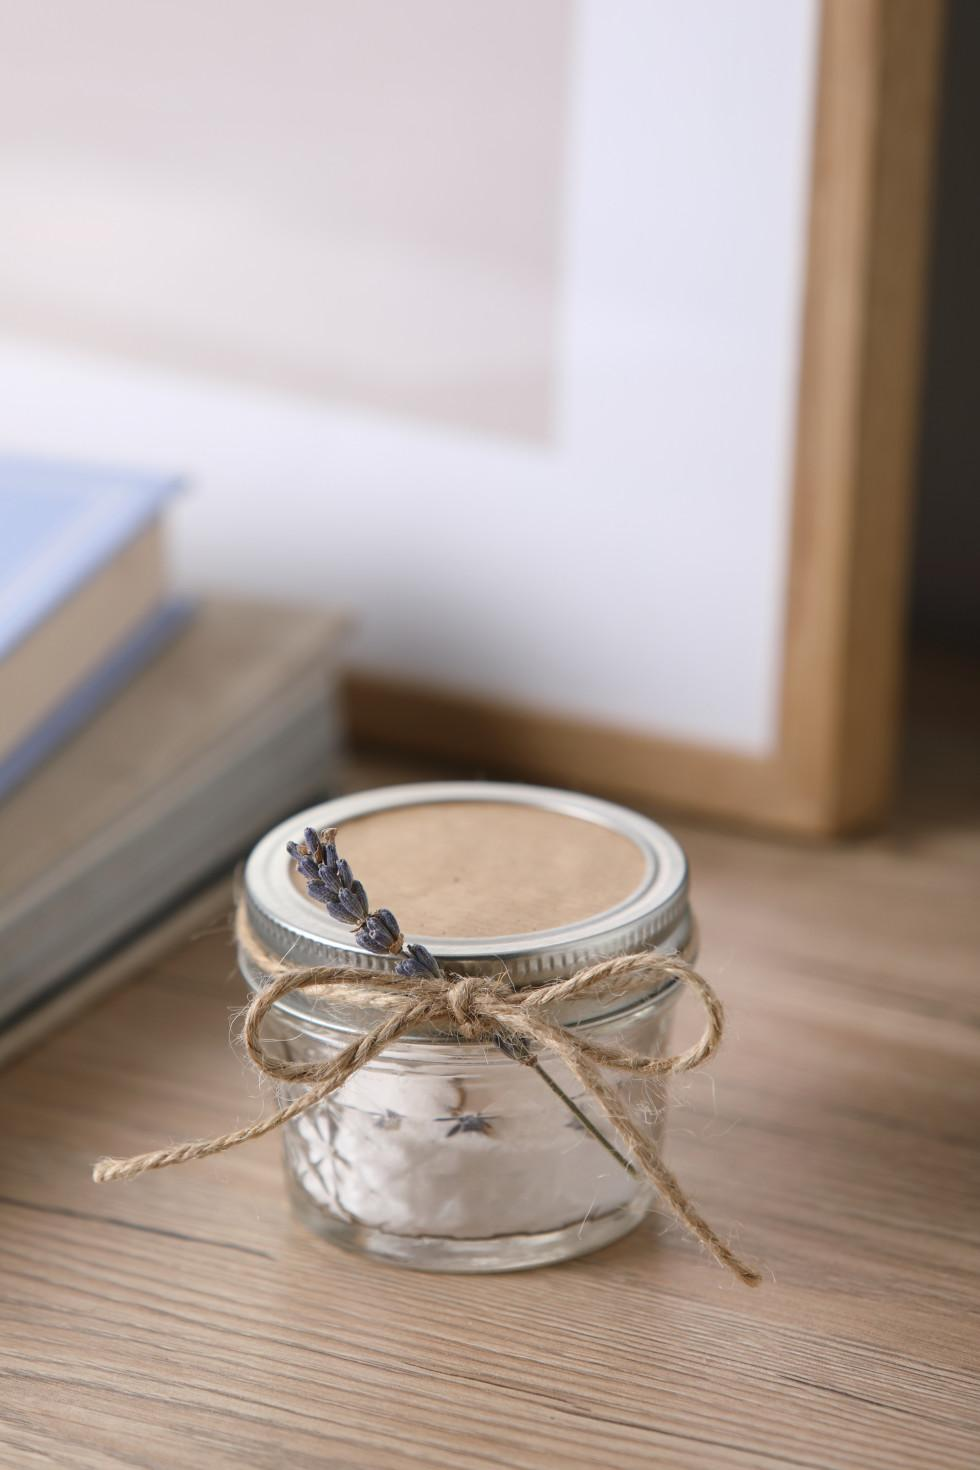 DIY natural air freshener in a mason jar tied with a sprig of lavender